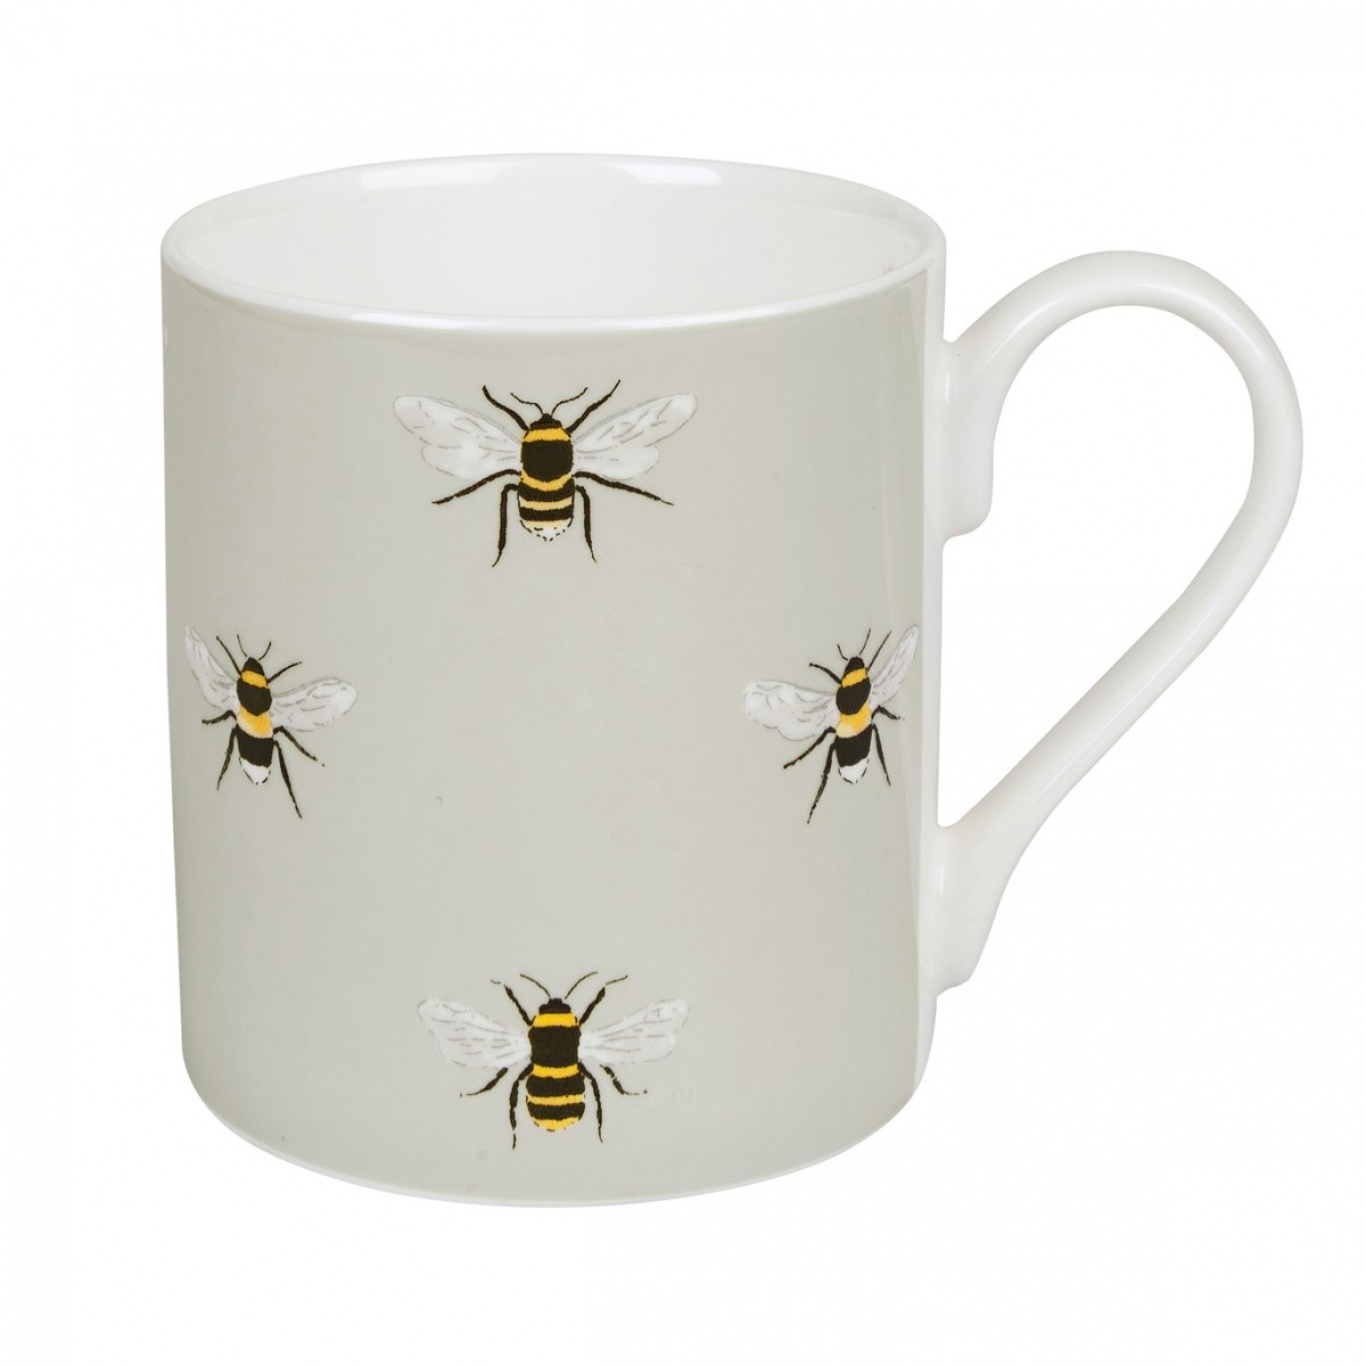 Image of Sophie Allport Bees Coloured Mug Standard